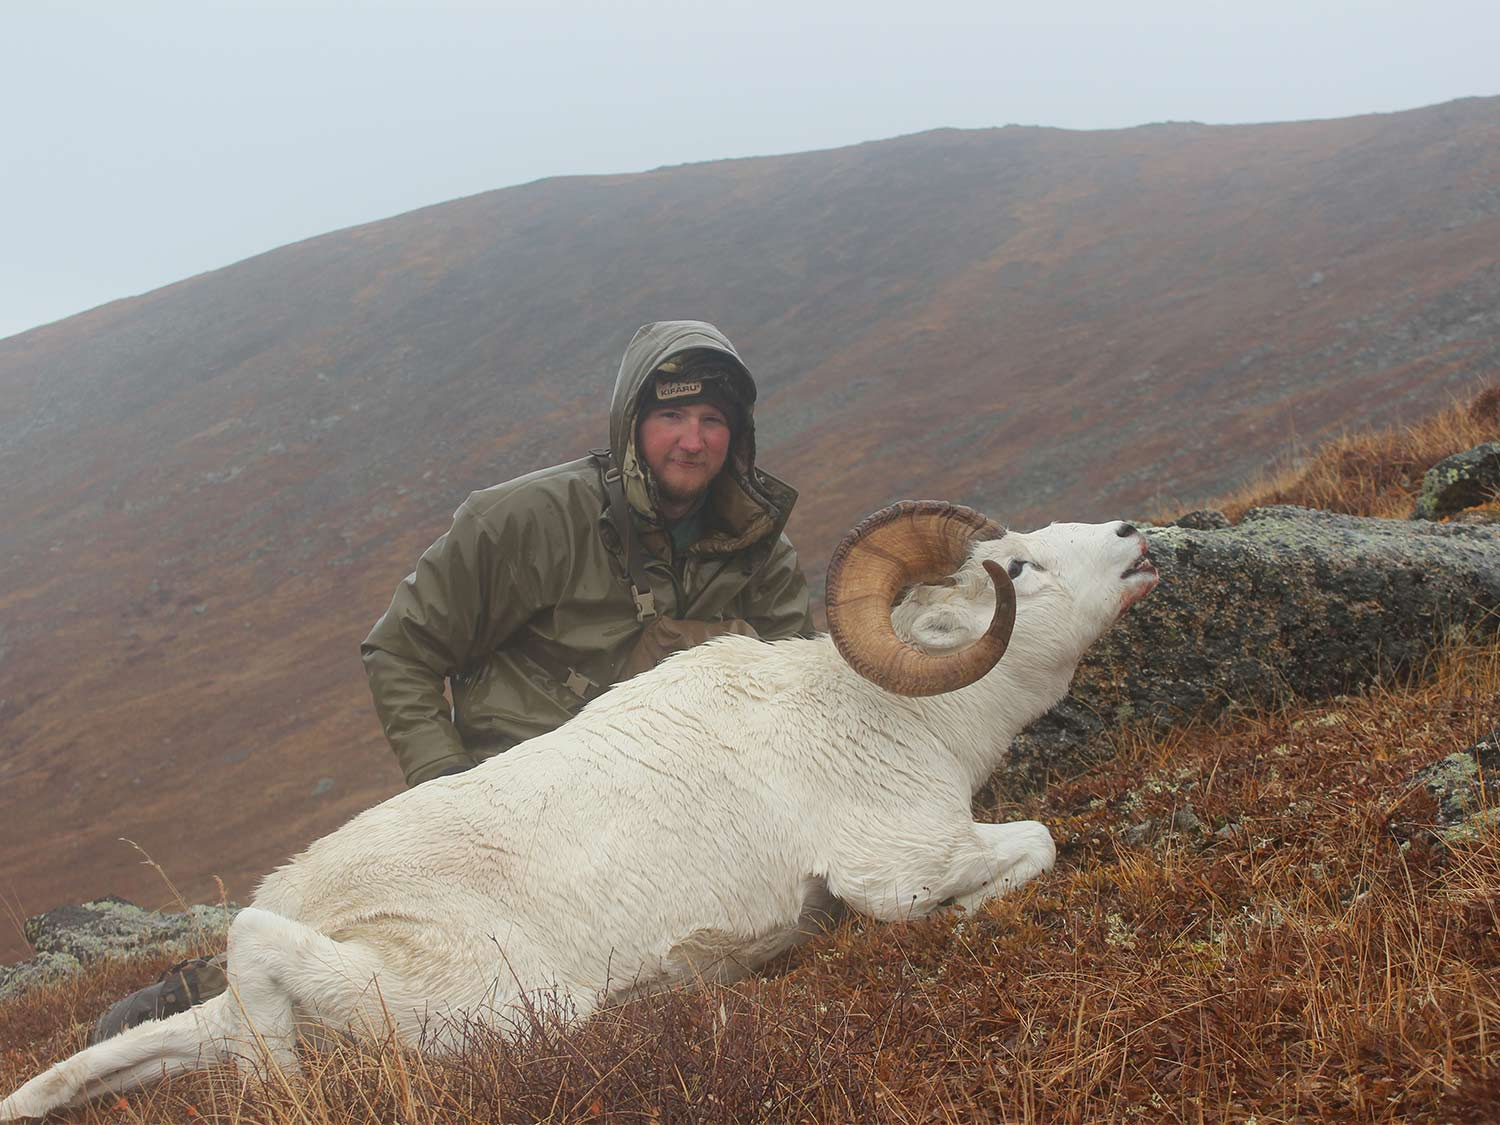 A hunter kneeling behind a white sheep.